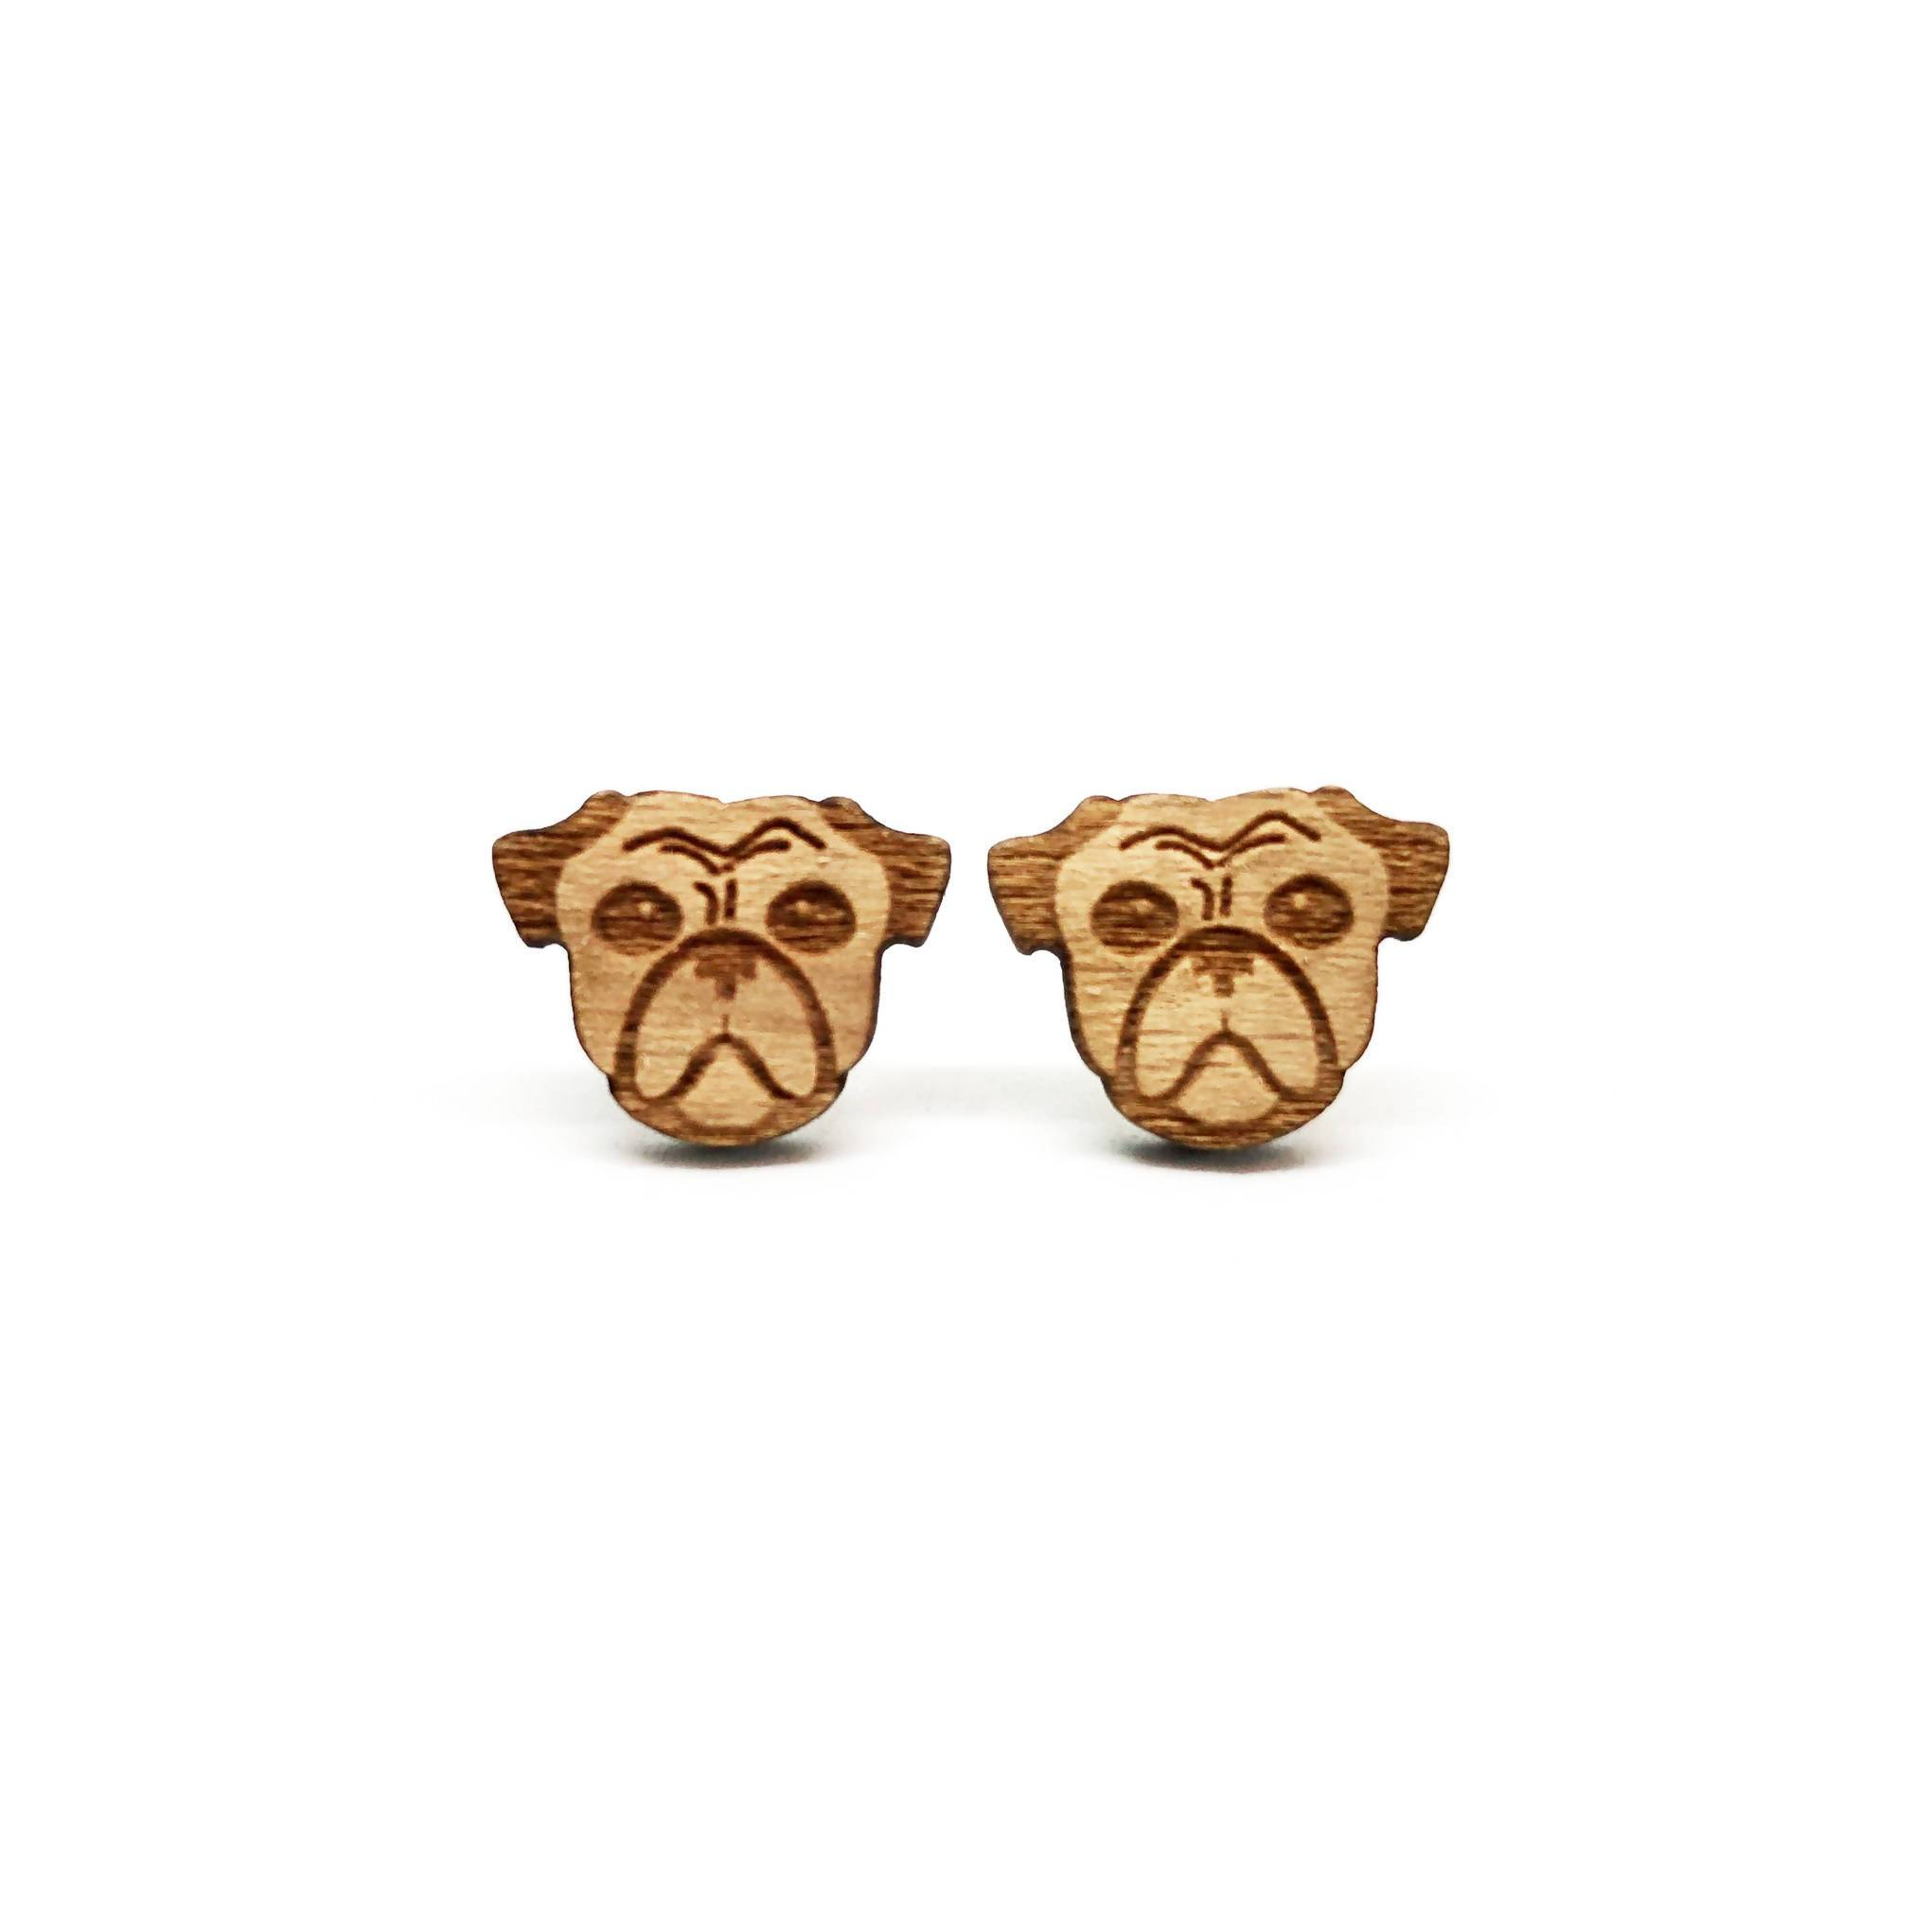 Lazy Bulldog Laser Cut Wood Earrings - Earring Studs - Paperdaise Accessories - Naiise